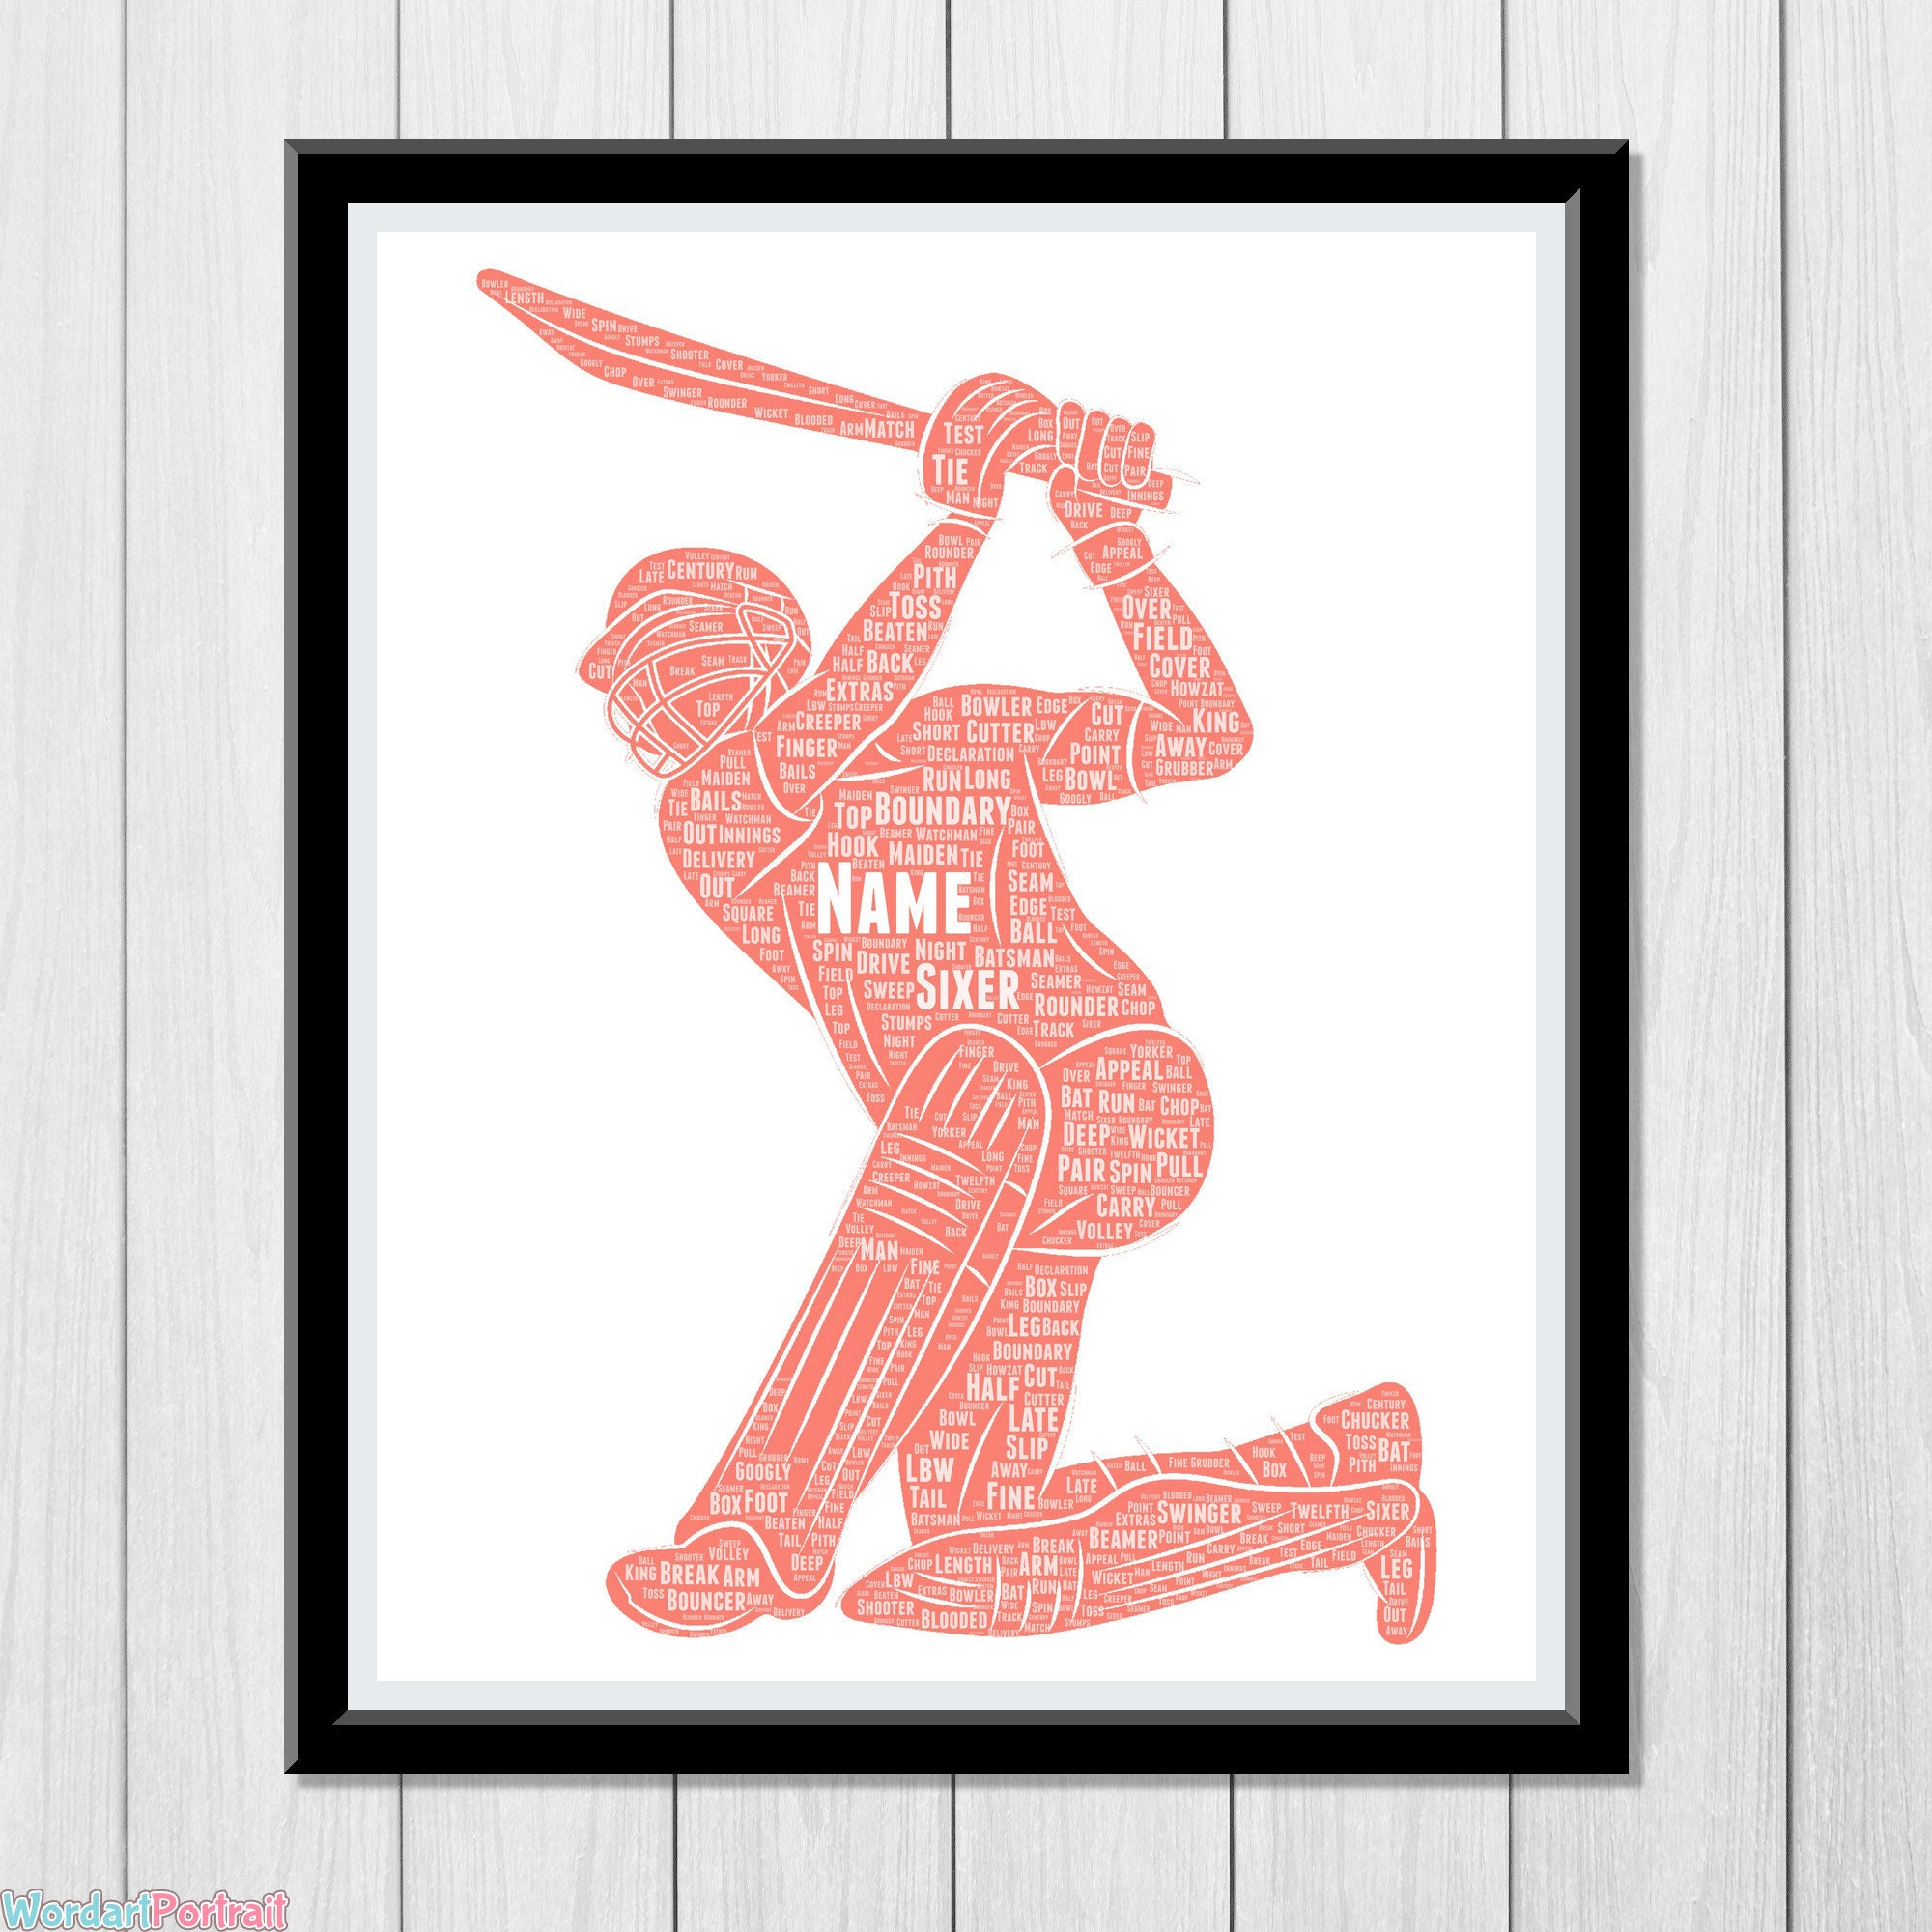 Personalised Cricket gift - cricket Word Art Gift - Cricketer Wall Art Print - For Cricket Club Team Player Cricket Birthday Dad Brother Husband Gift Batsman